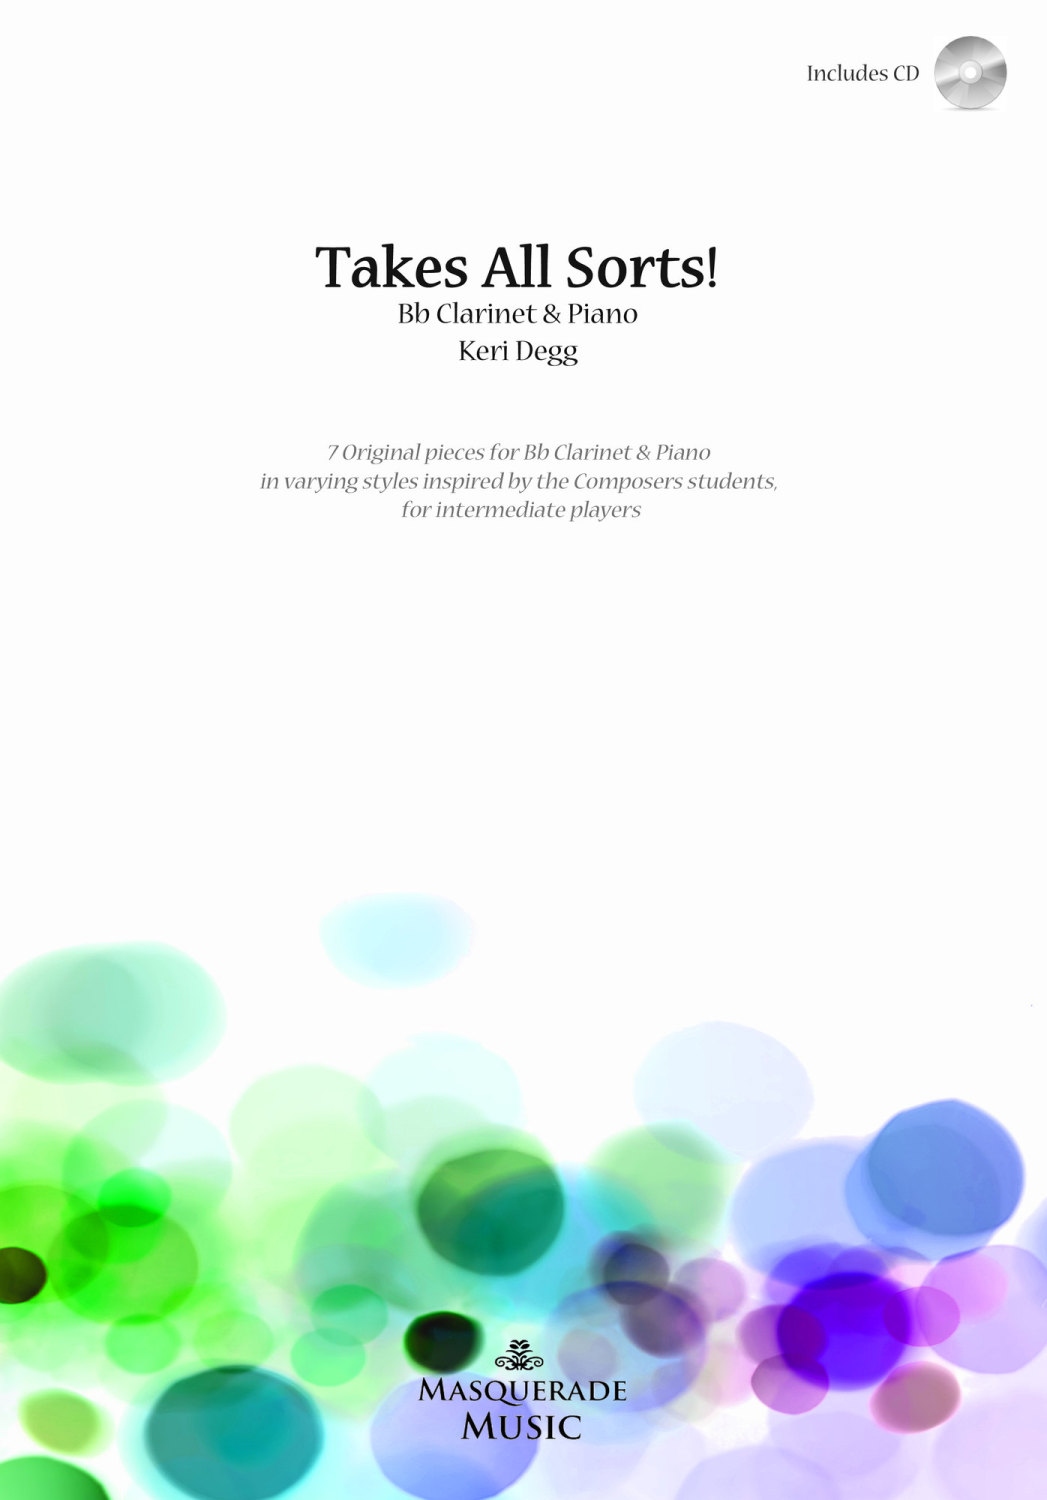 'Takes all sorts!' (Bb Clarinet & Piano) with CD.